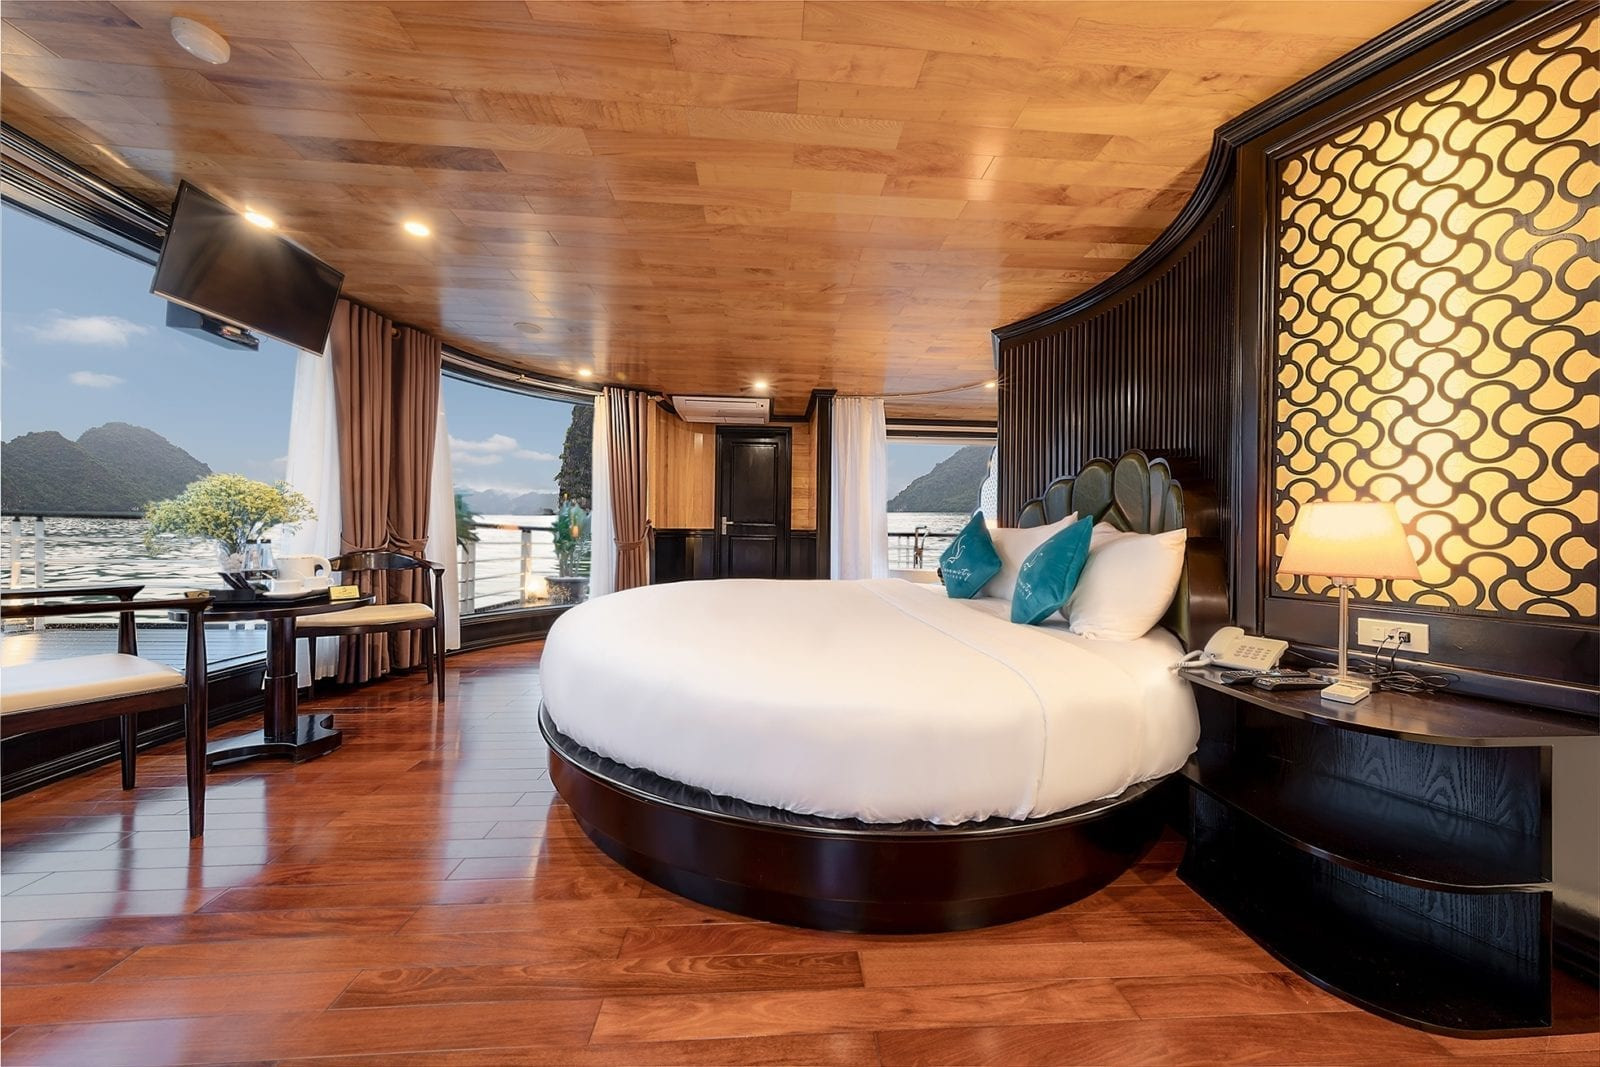 Room at Halong Serenity Cruises